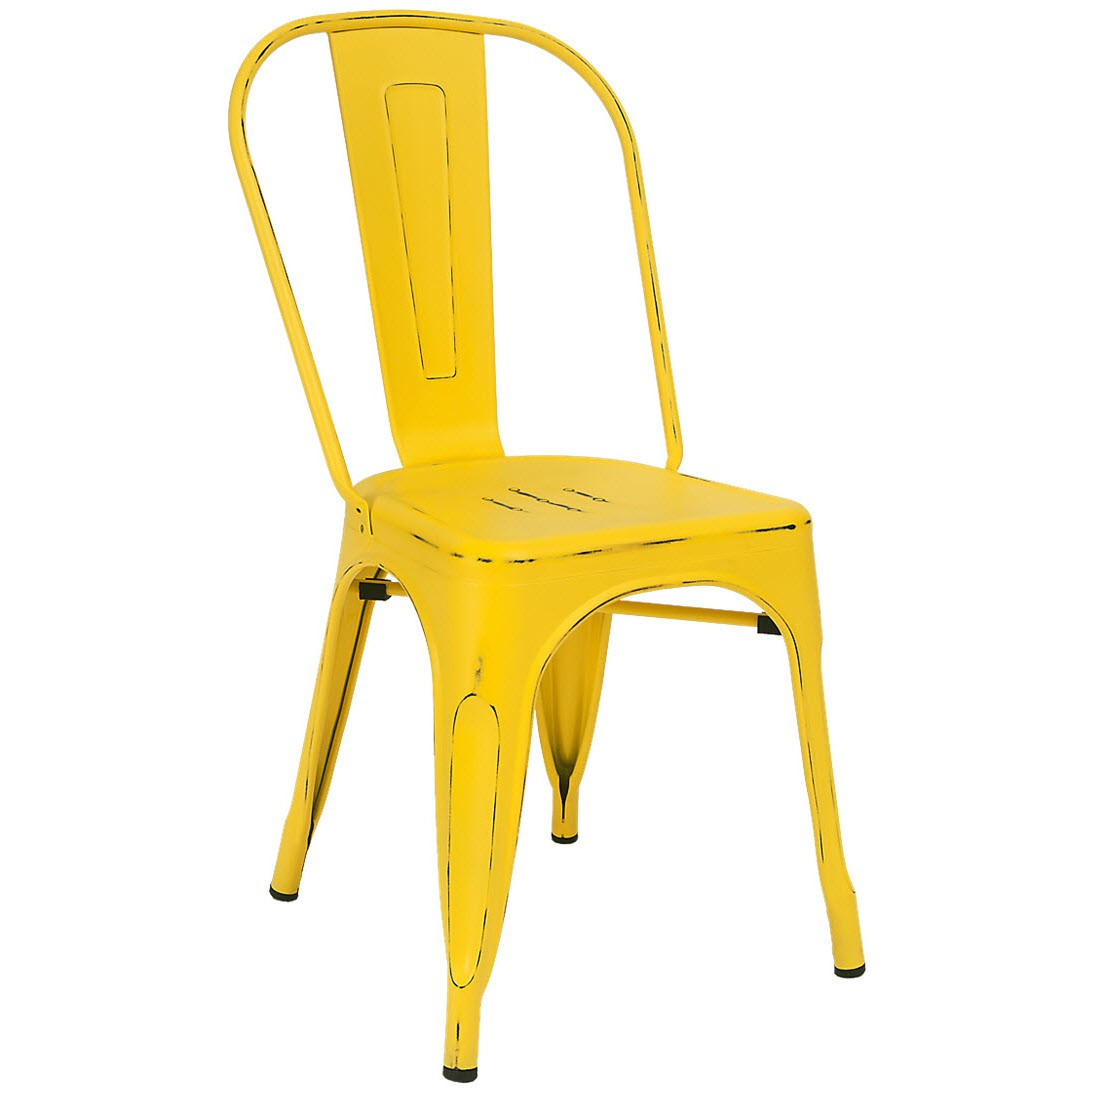 Yellow Metal Chairs Bistro Style Metal Chair In Distressed Yellow Finish